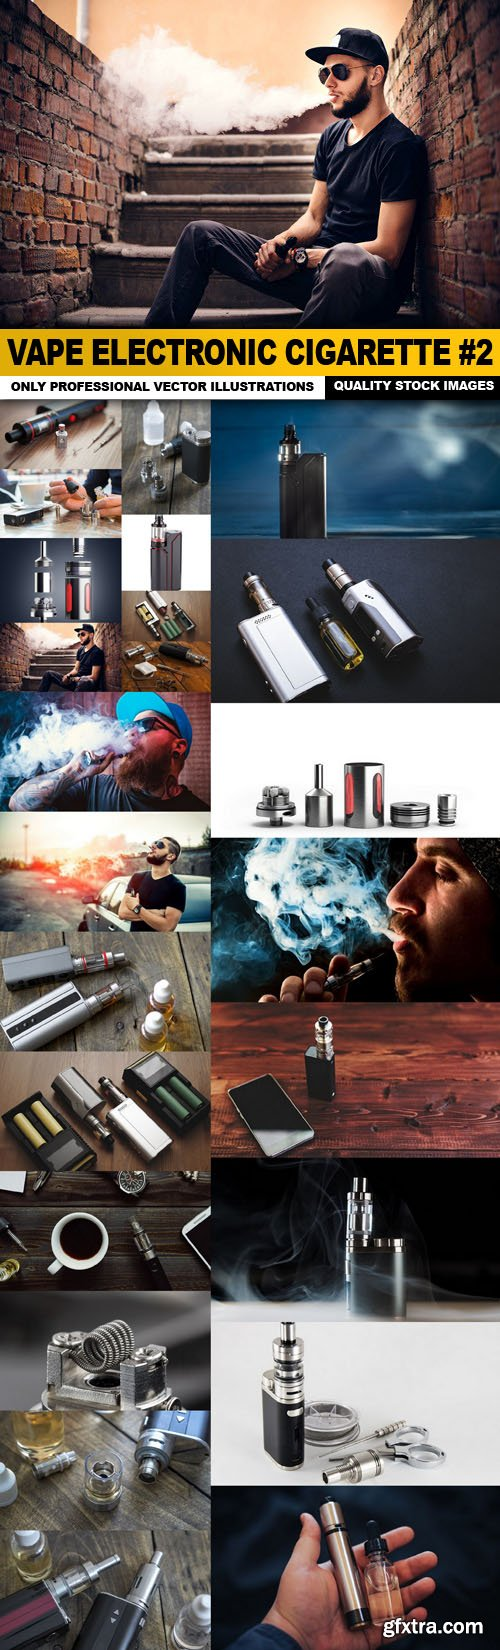 Vape Electronic Cigarette #2 - 25 HQ Images